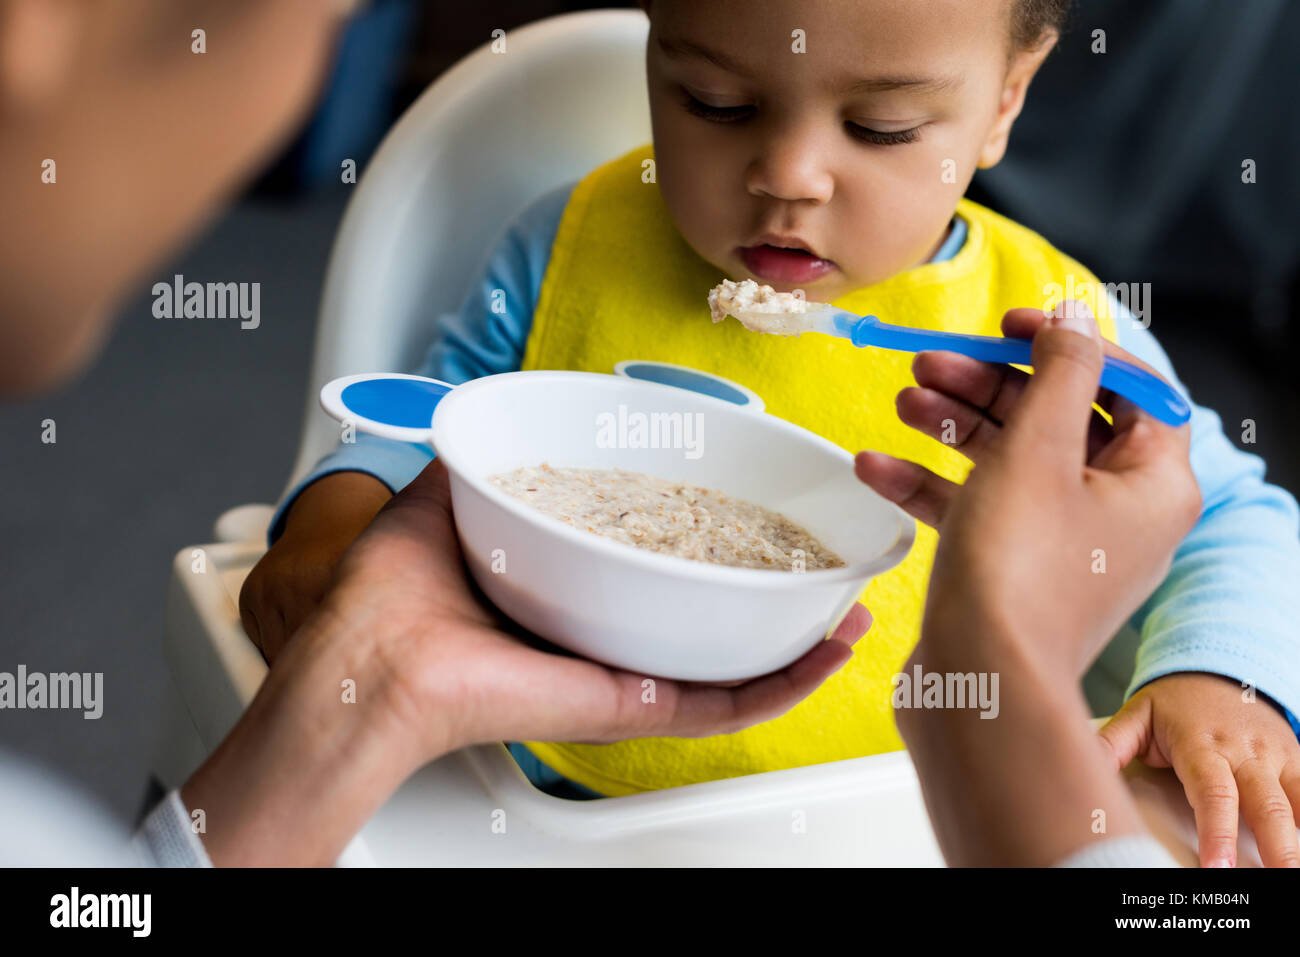 little son eating porridge - Stock Image